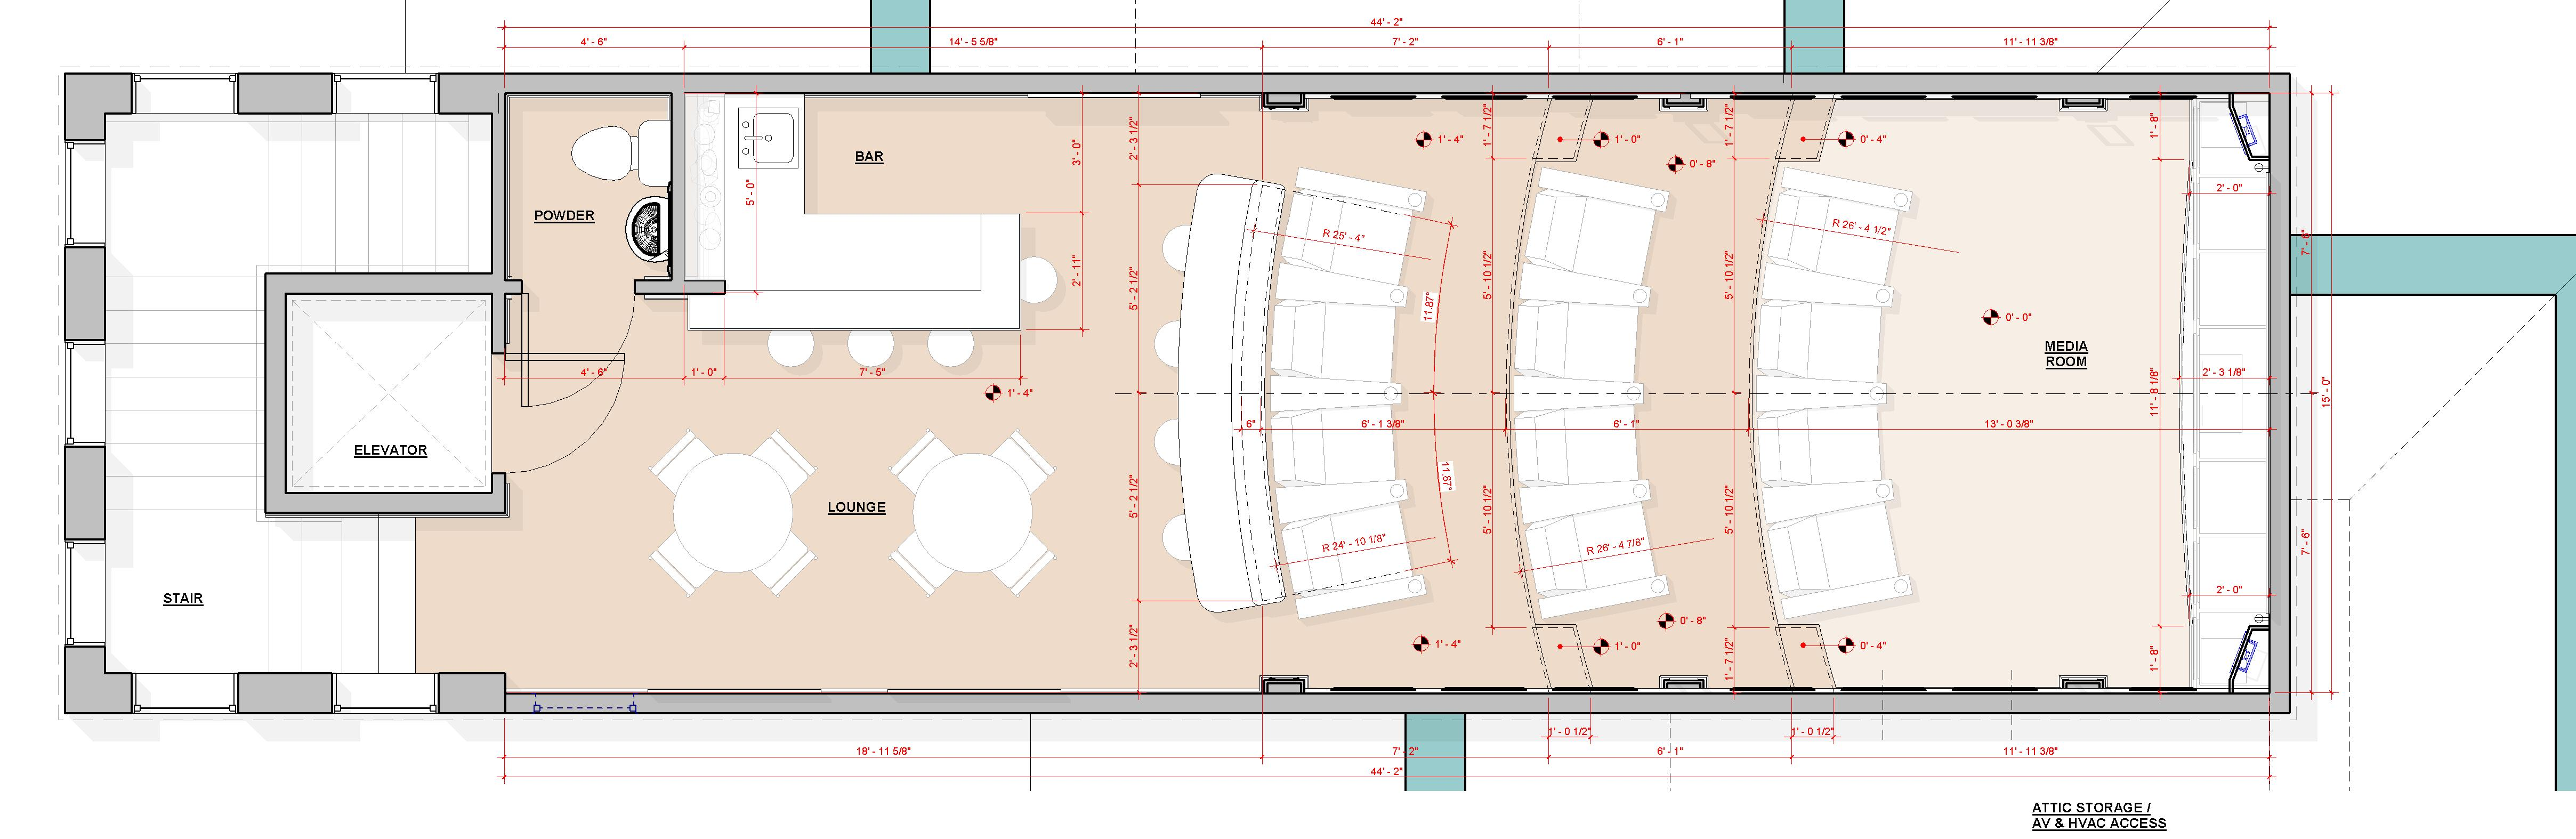 B_ - Floor Plan - Level 3 - Media Room - Riser Plan.jpg